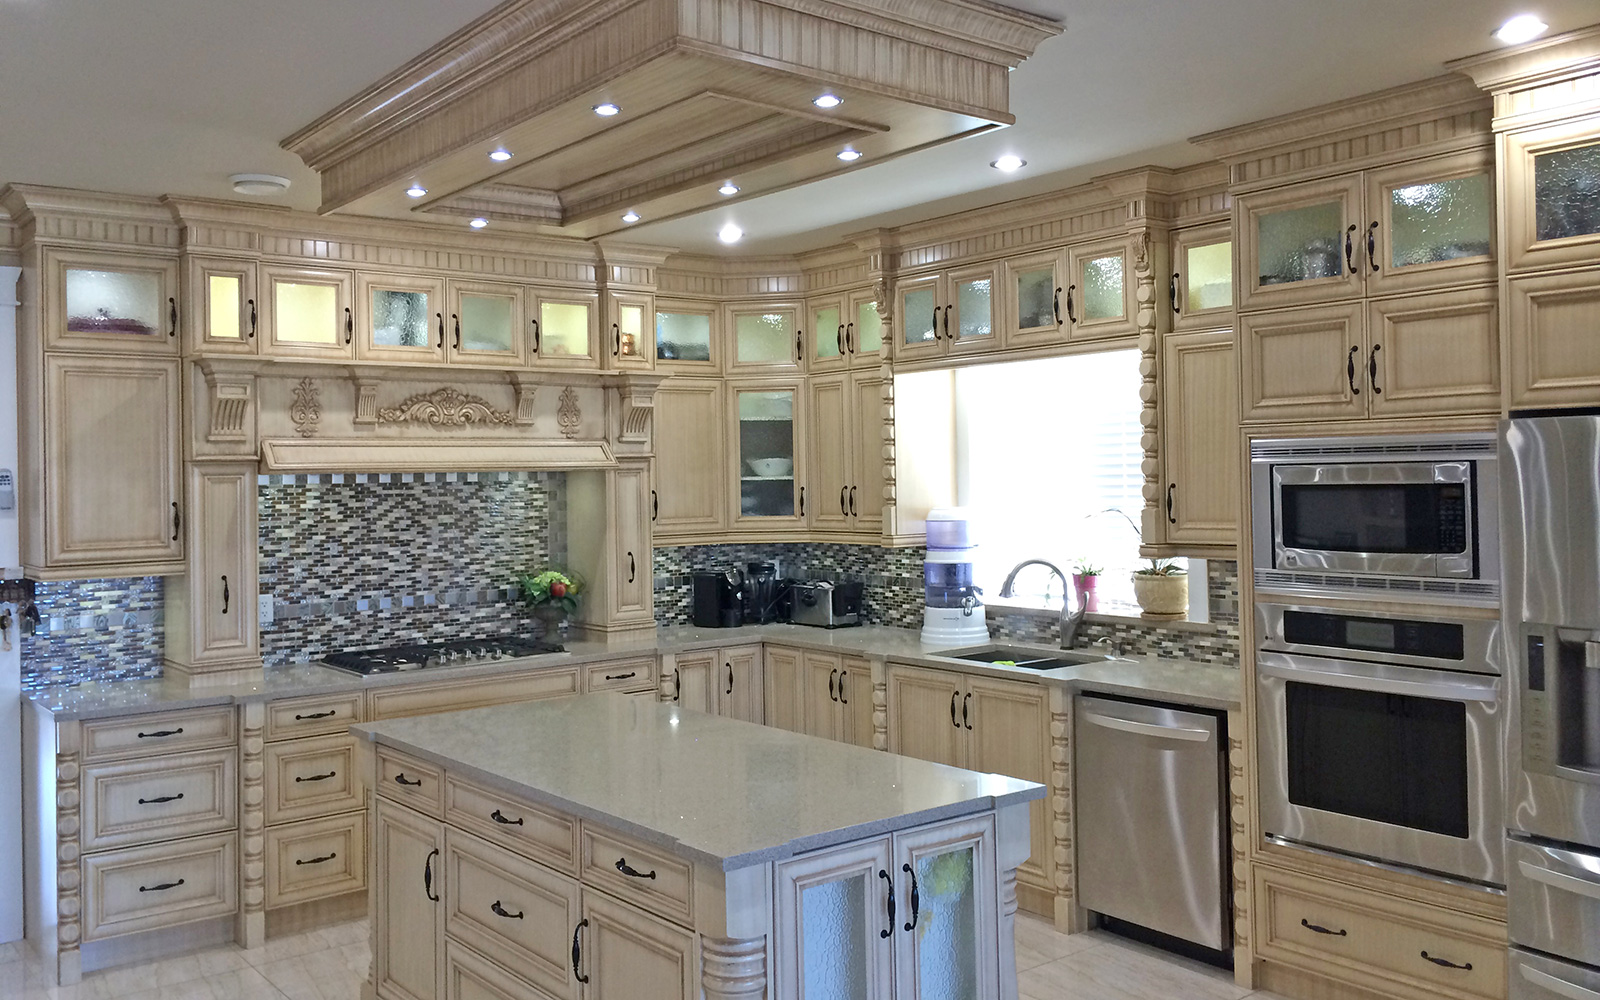 Calgary custom kitchen cabinets ltd countertops for Latest kitchen cabinets